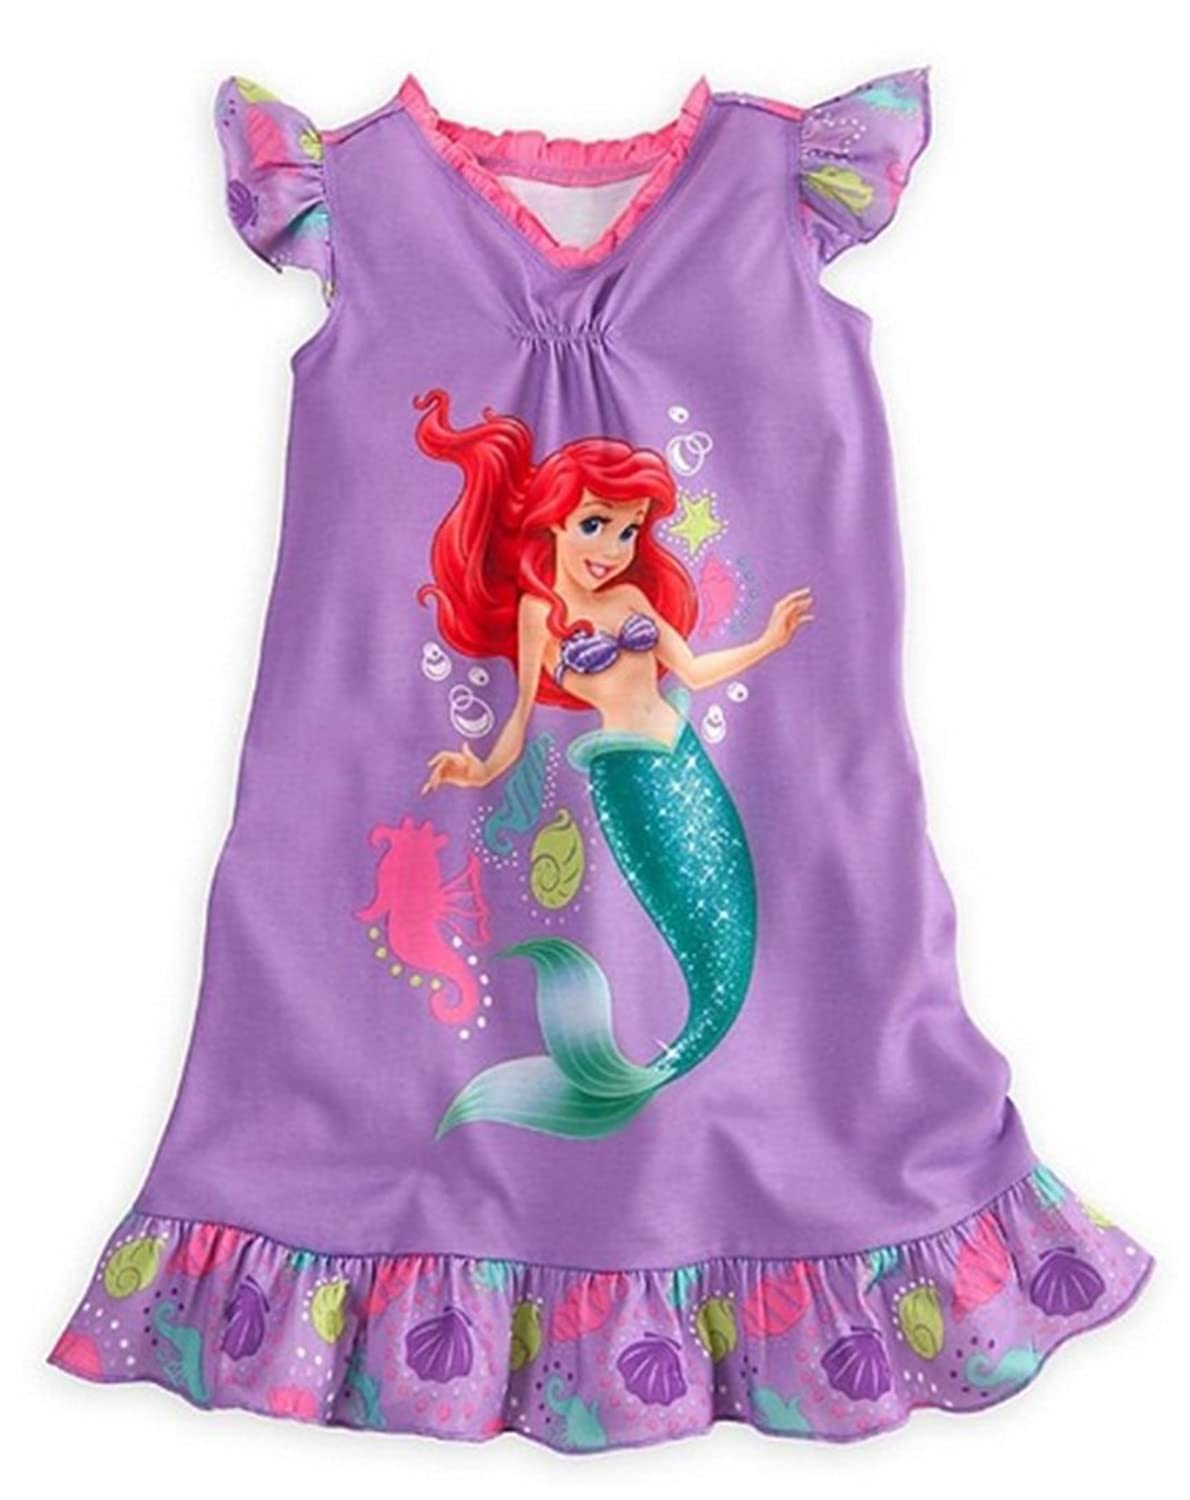 Colorful Disney Night Gowns Image Collection - Images for wedding ...